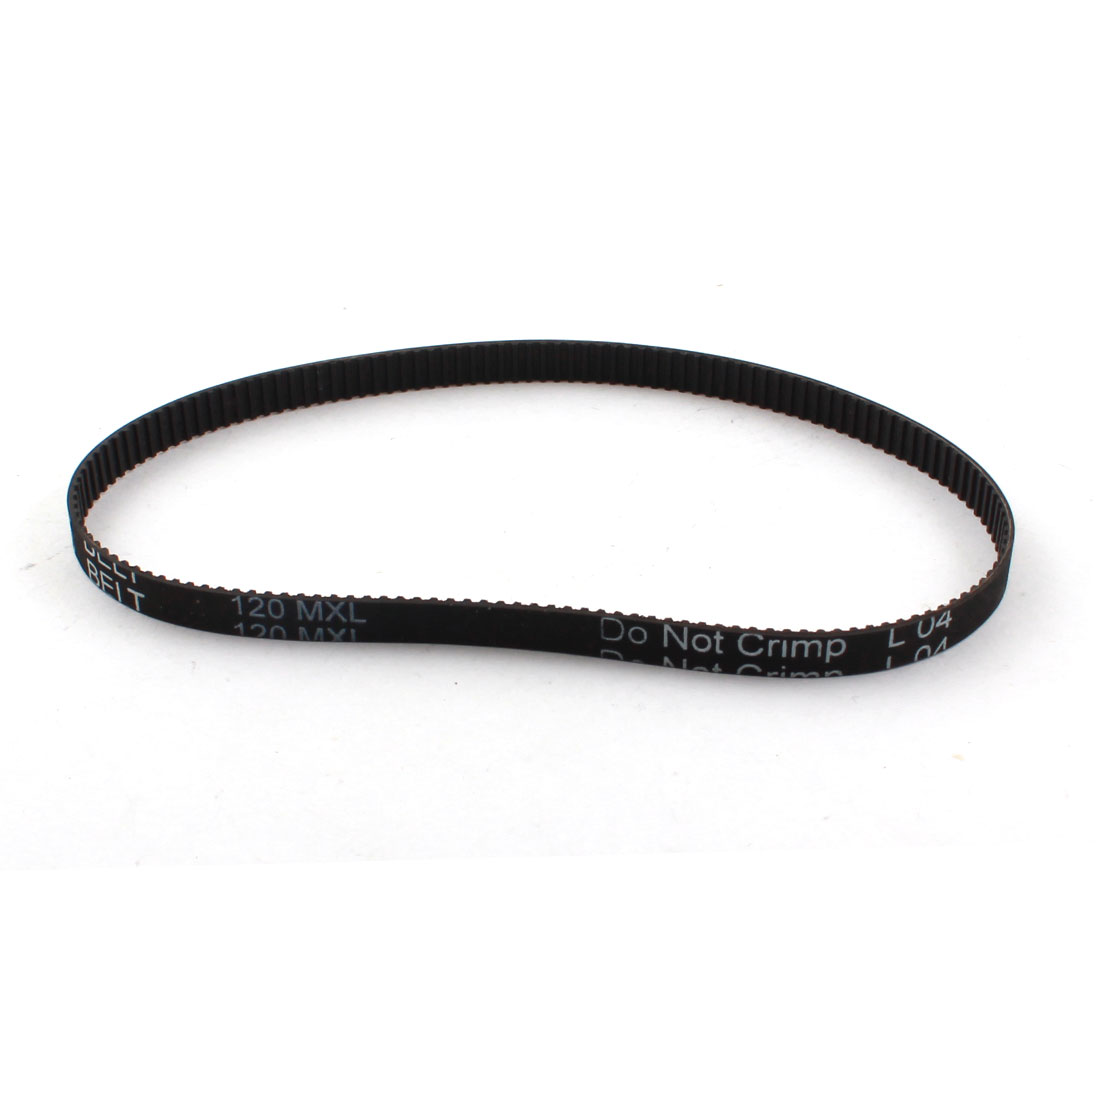 "120MXL025 150 Teeth 2.032mm Pitch 1/4"" Width Stepper Motor 3D Printer Black Groove Synchronous Timing Belt 12"""